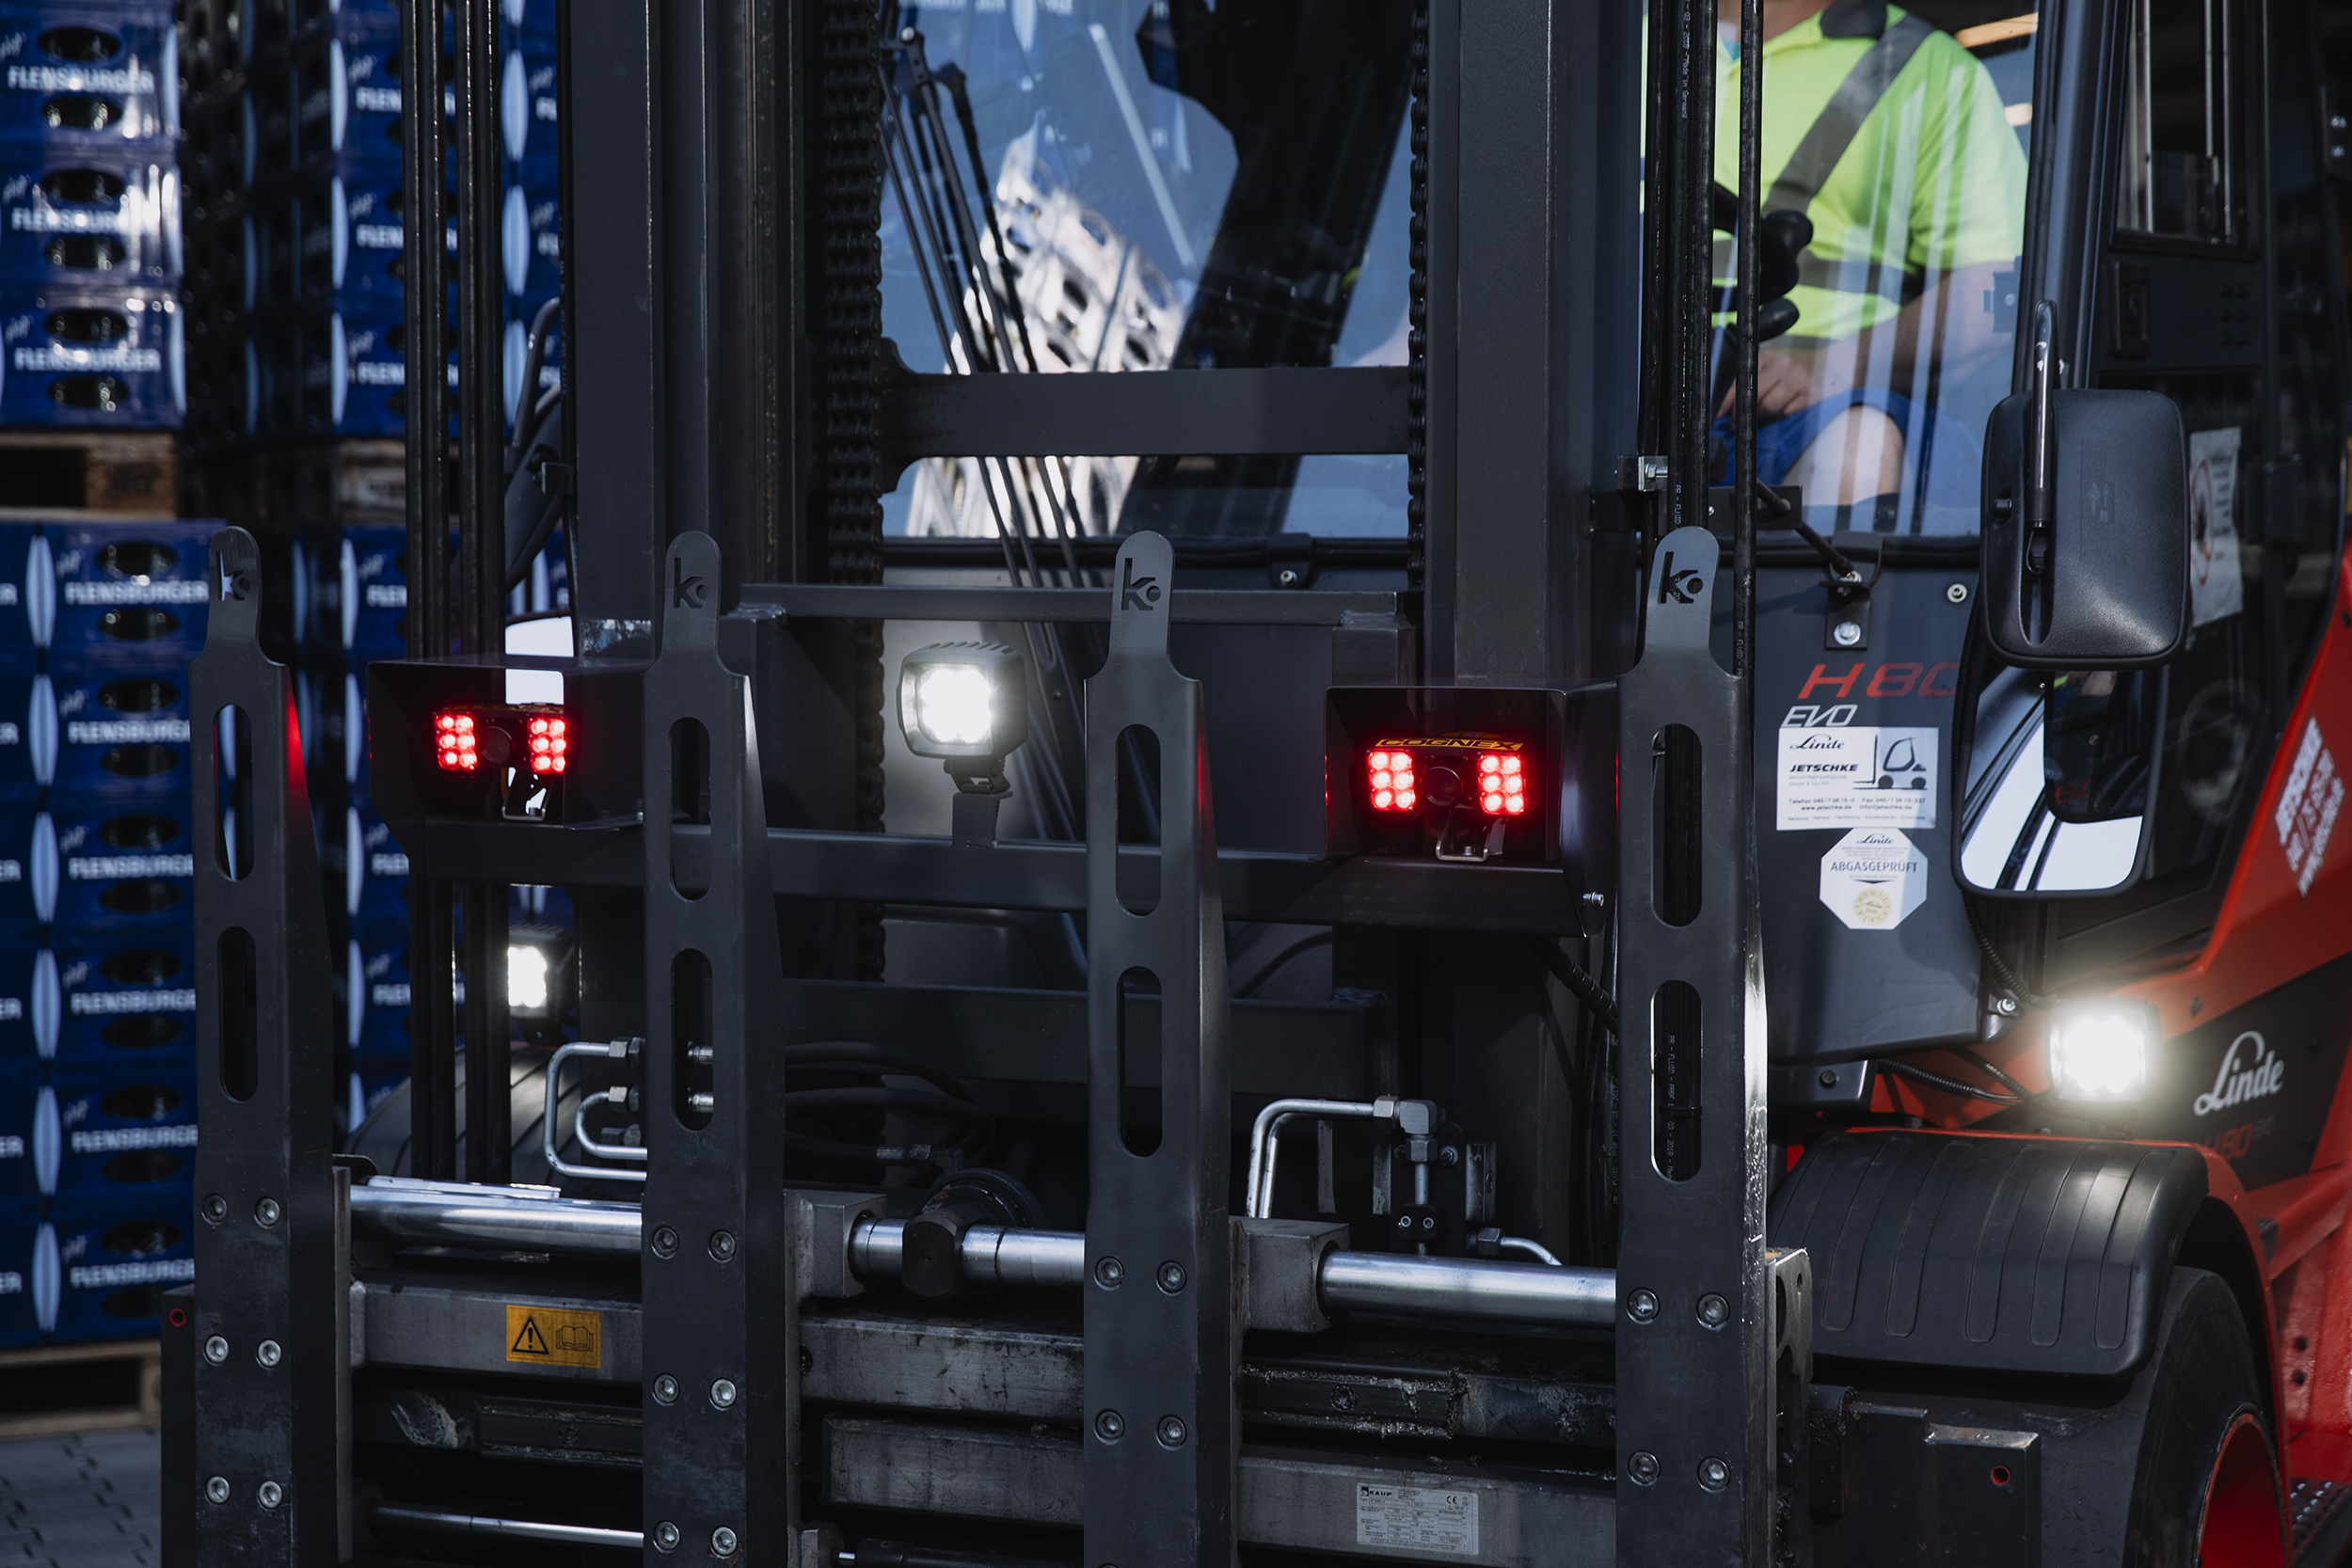 Forklift in a brewery warehouse with barcode readers mounted on it